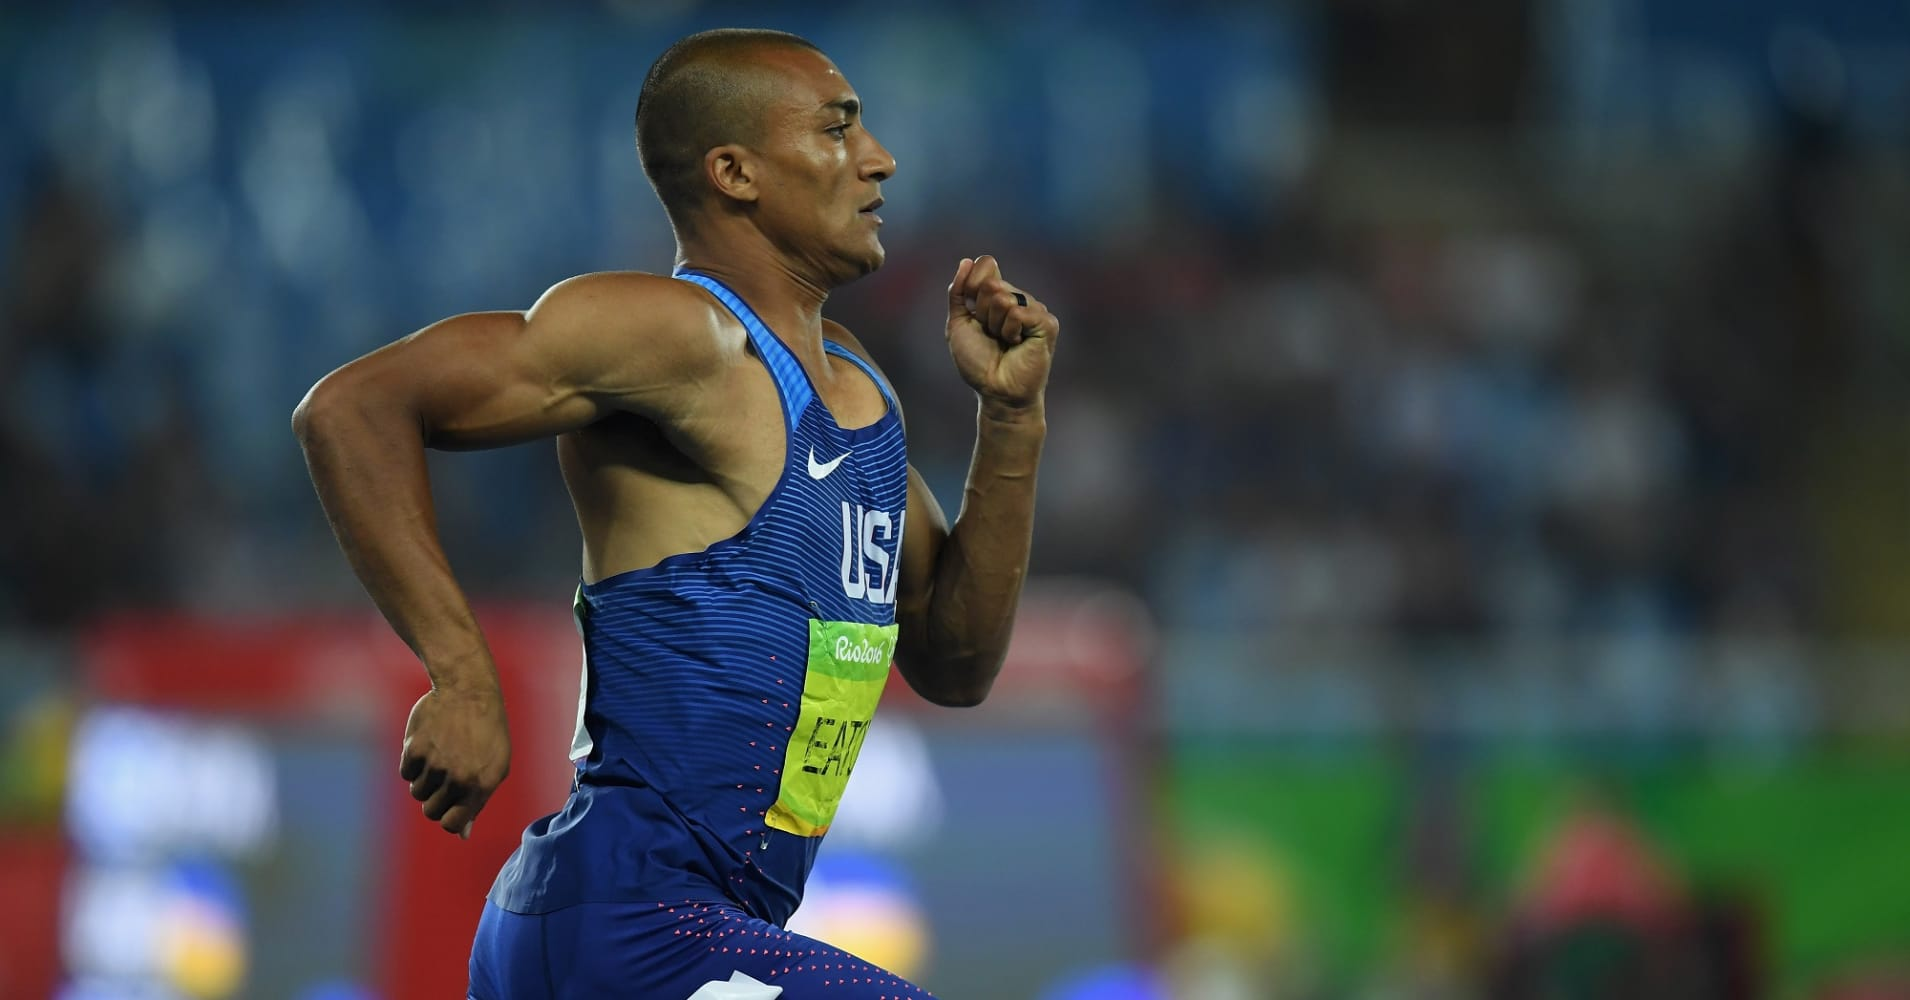 Two-time Olympic champion, Ashton Eaton, holds the world record in both the decathlon and indoor heptathlon.